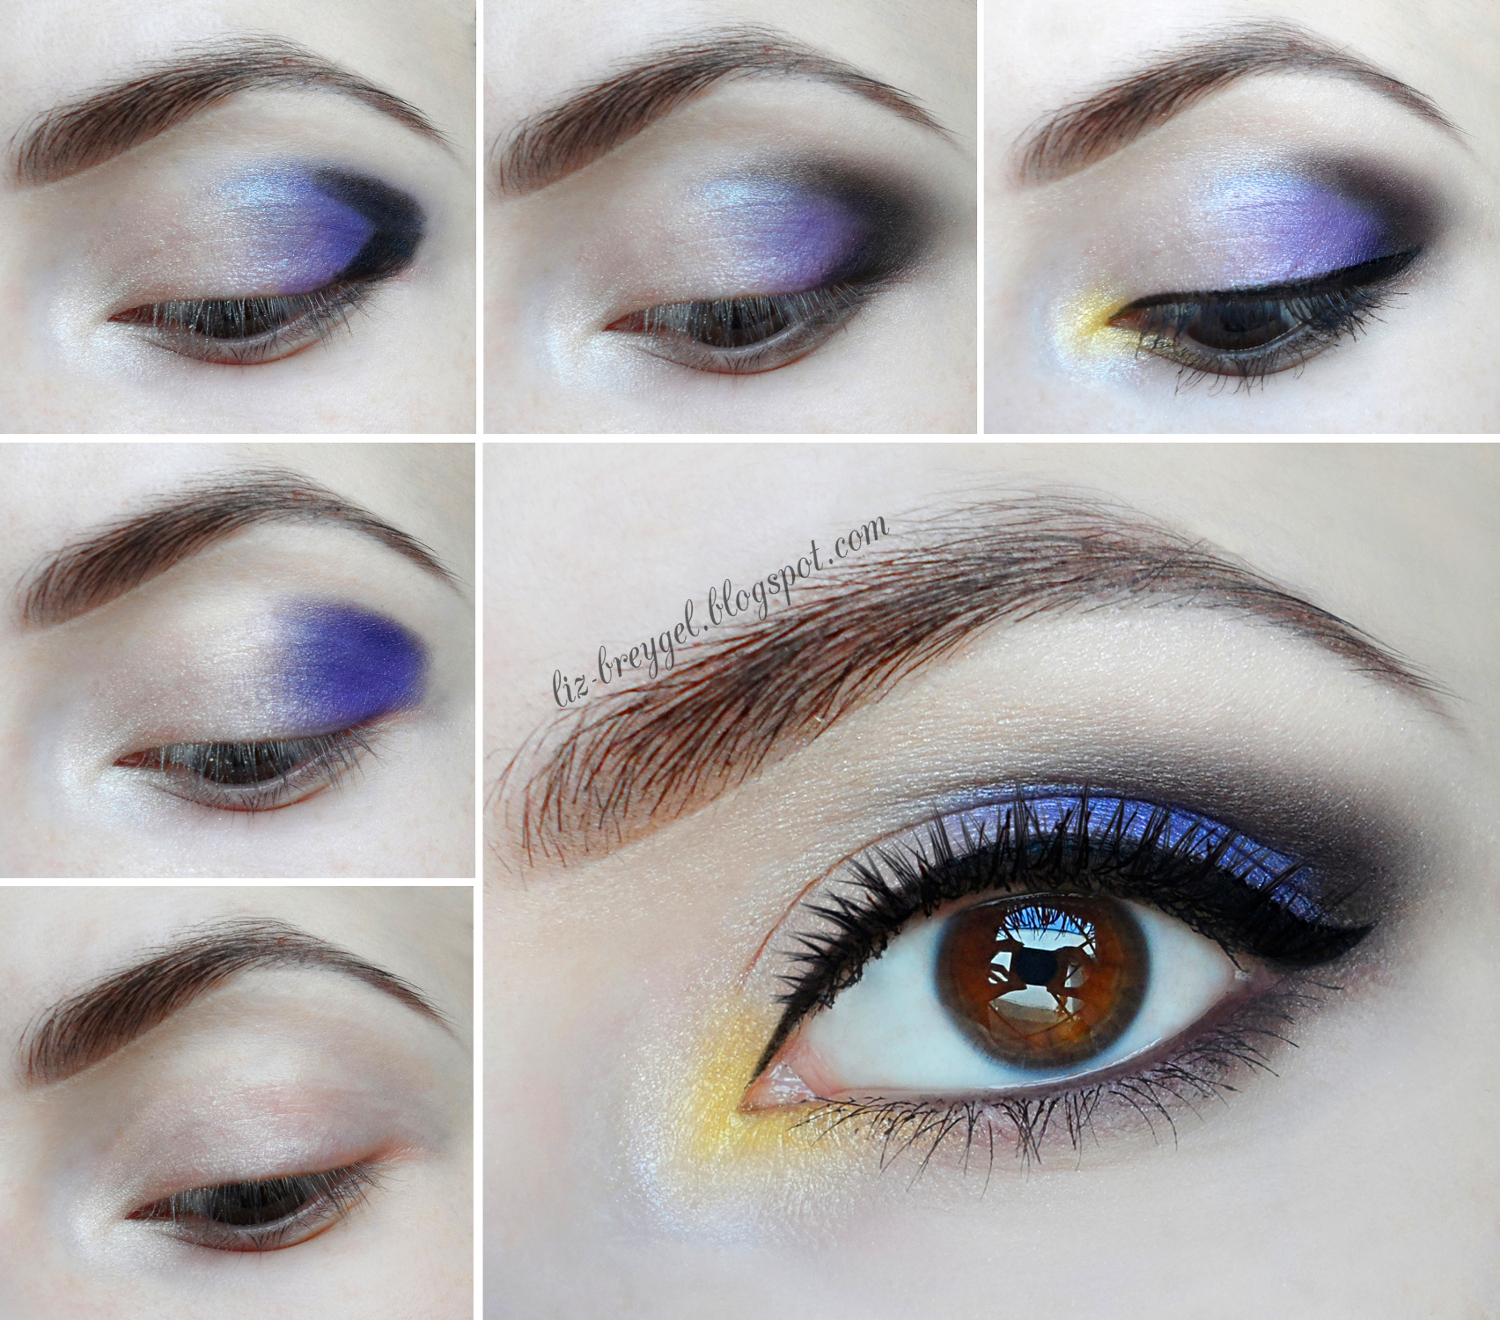 Christmas new year thanksgiving makeup tutorial party makeup lilac purple violet eye shadows